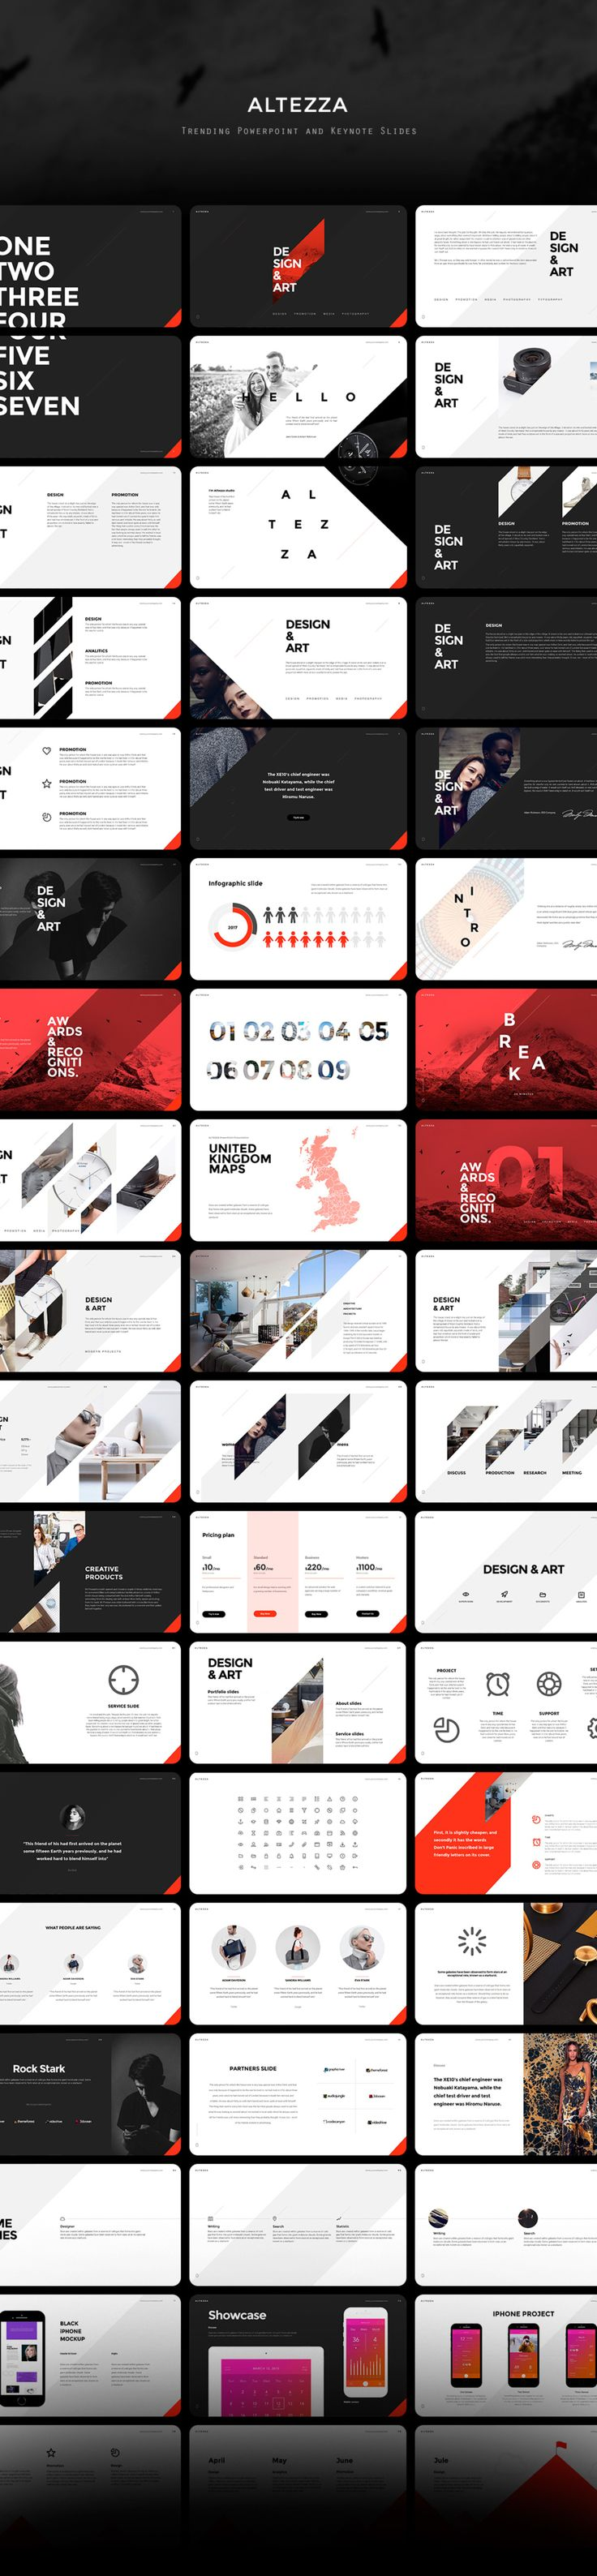 ALTEZZA is a stunning multipurpose template that meets the latest design trends to suit your needs. Included are 110 Powepoint and 110 Keynote trending slides, 12 categories, 250+ vector icons, one cl